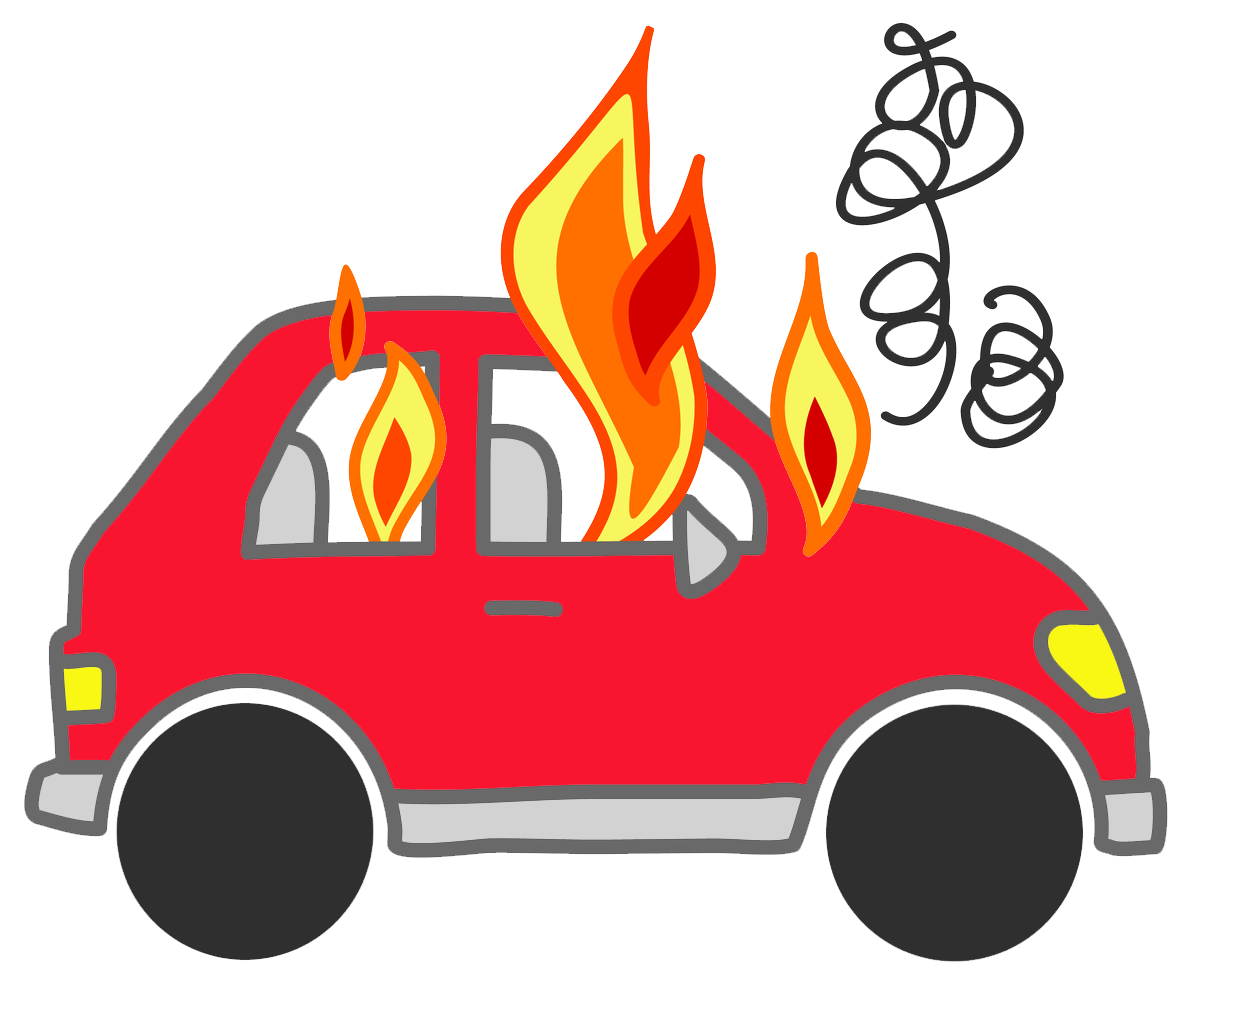 graphic black and white download Paws clipart car. Flames real flame free